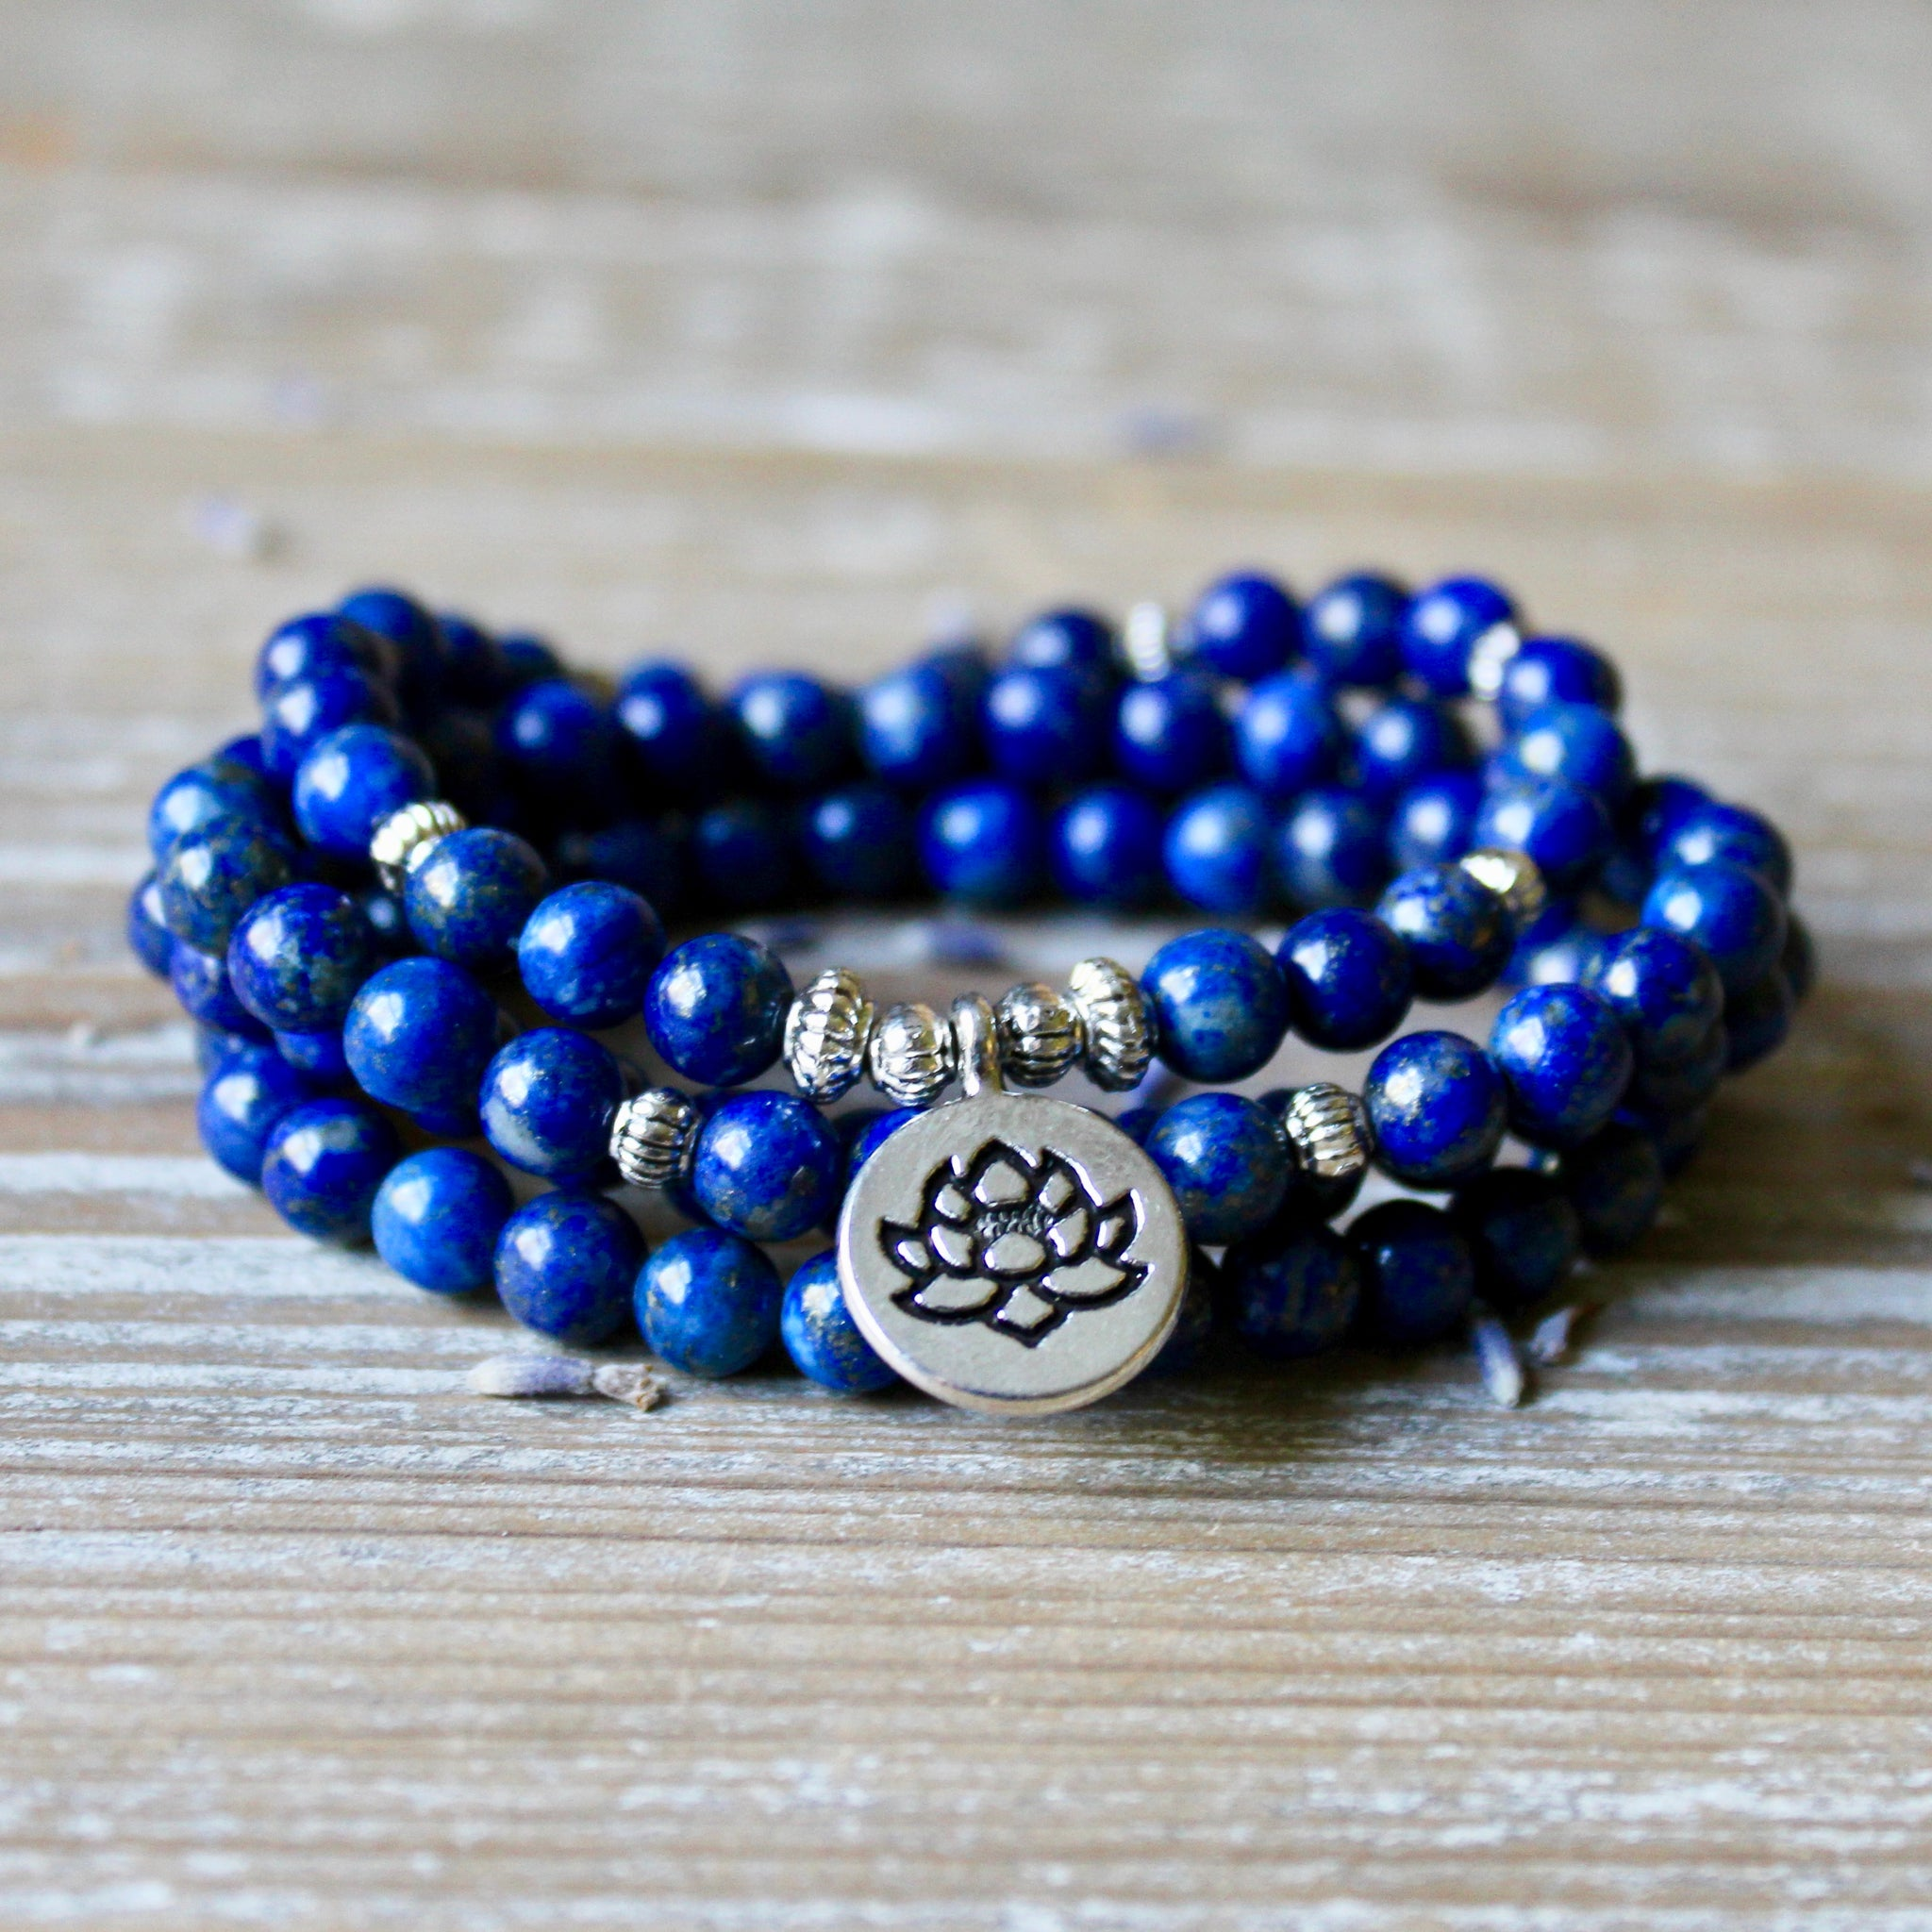 Lapis Lazuli Wrap Bracelet with Silver Lotus Charm and Gift Bag.